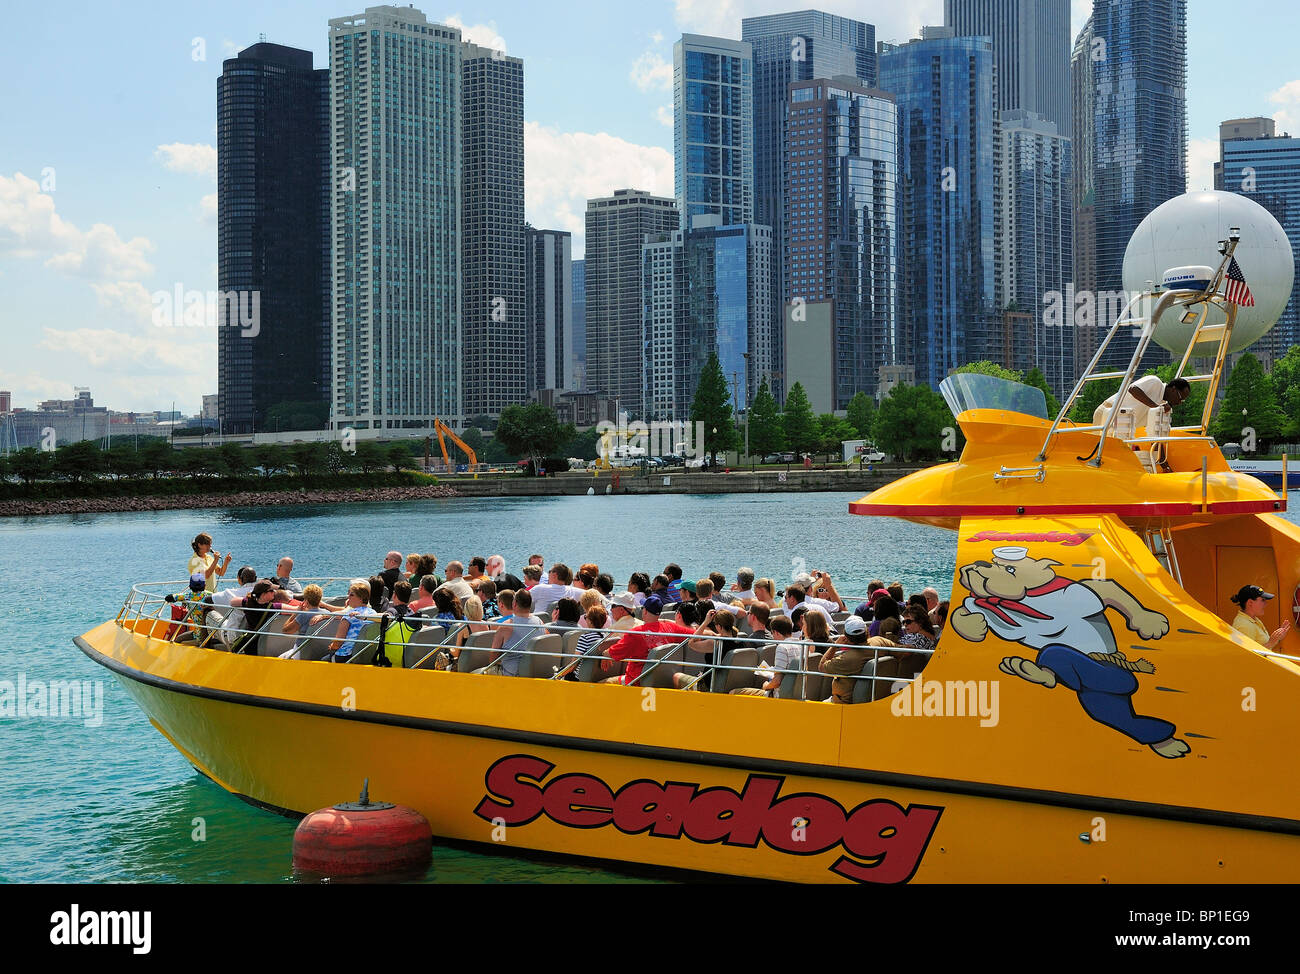 Excursion boat packed with tourists leaving Chicago's Navy Pier for a fast paced trip out onto Lake Michigan. - Stock Image